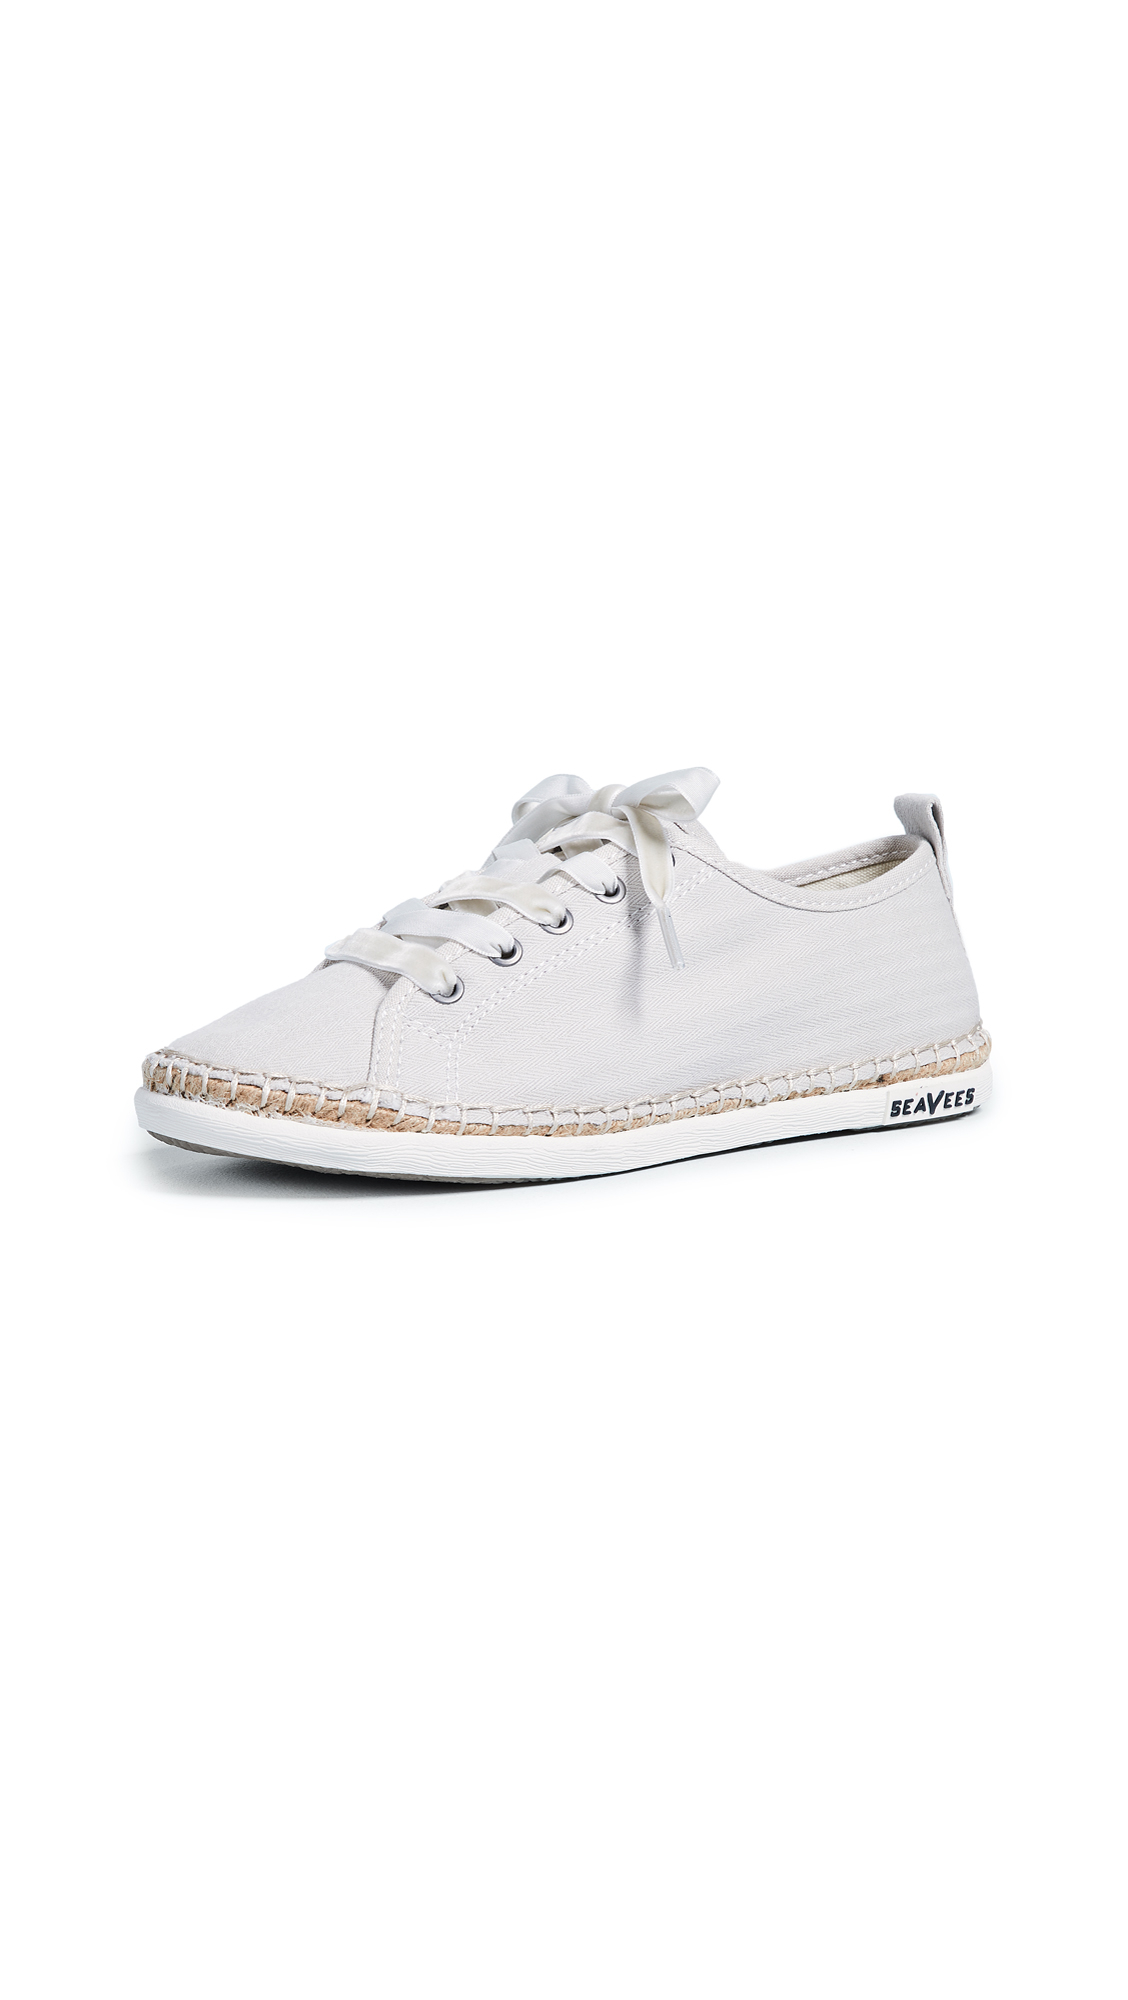 SeaVees Laurel Canyon Espadrille Sneakers